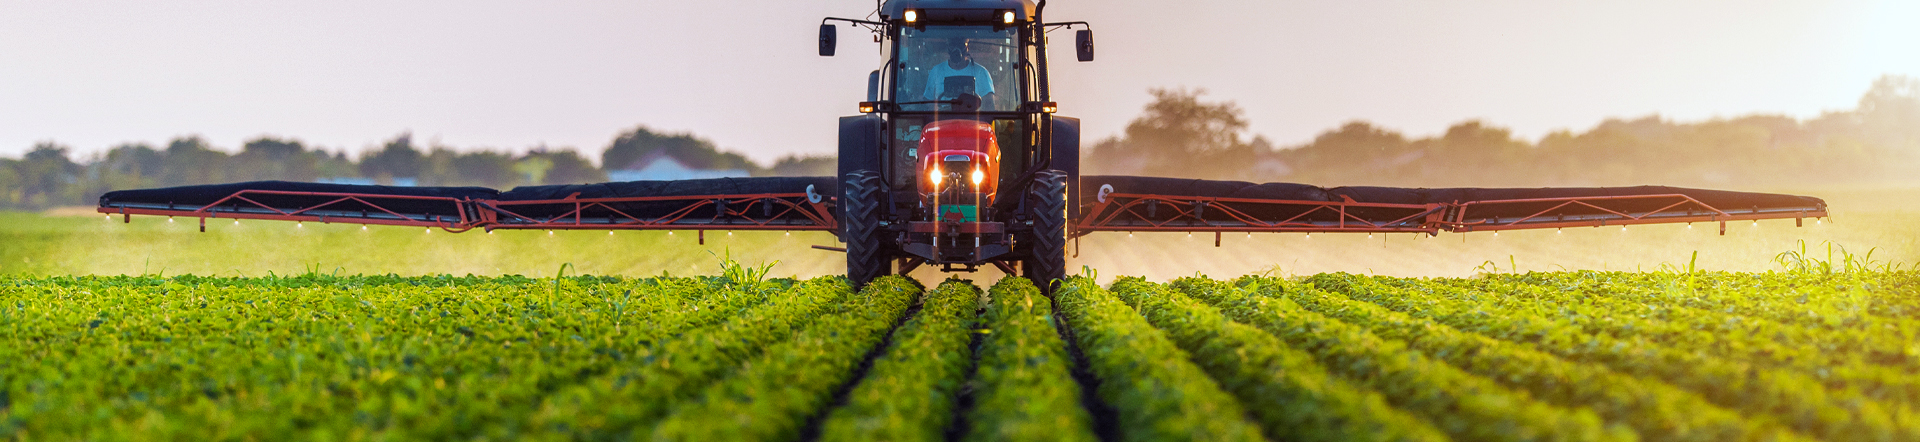 man in tractor spraying pesticides